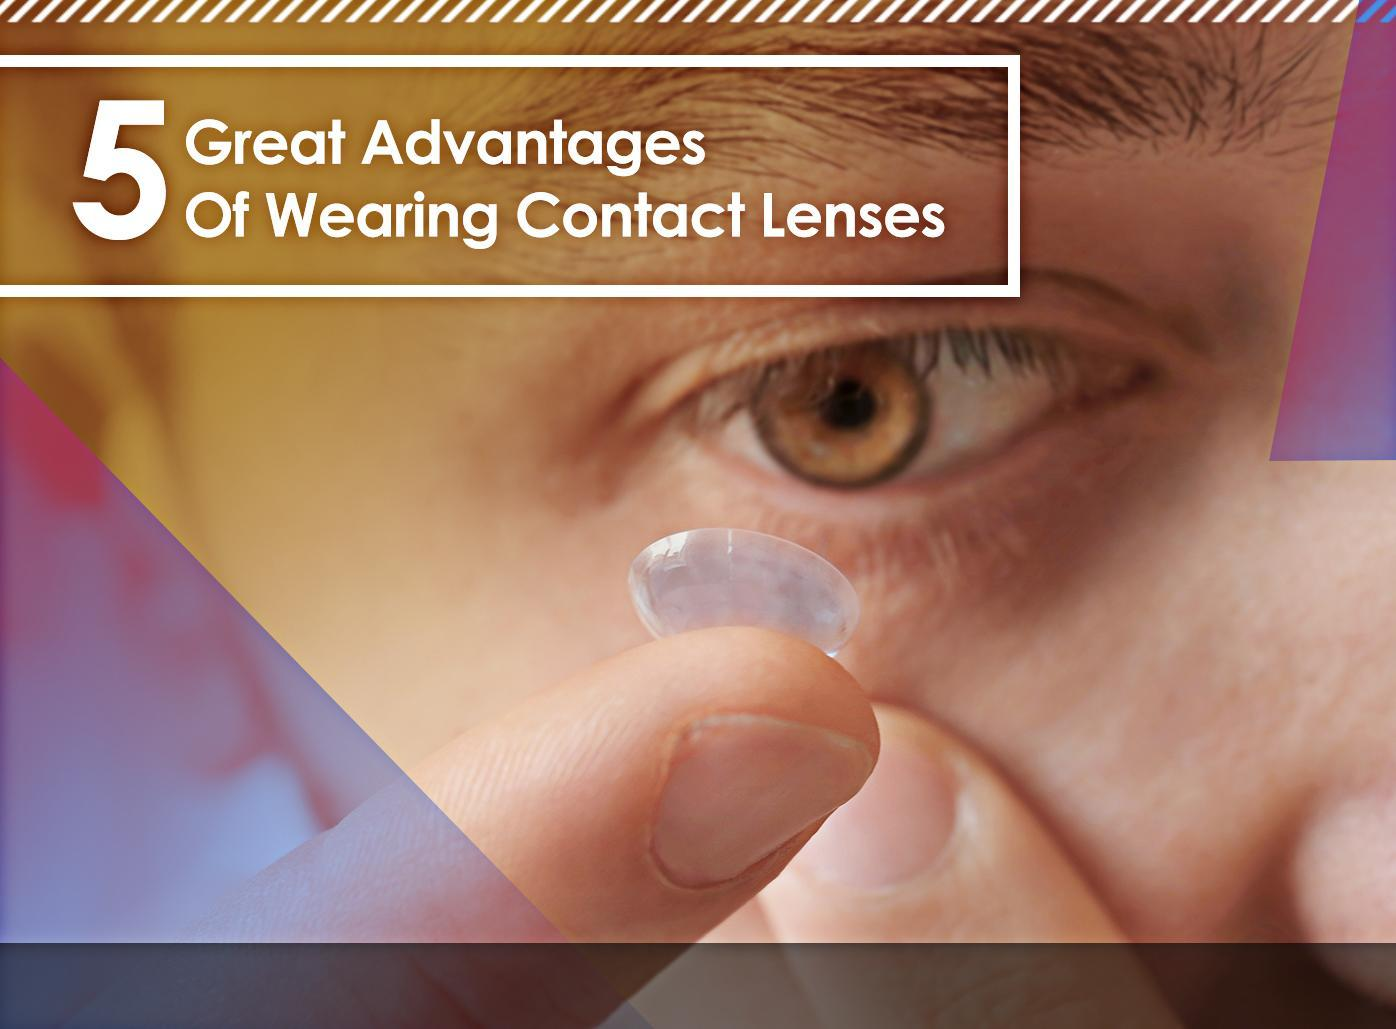 5 Great Advantages Of Wearing Contact Lenses